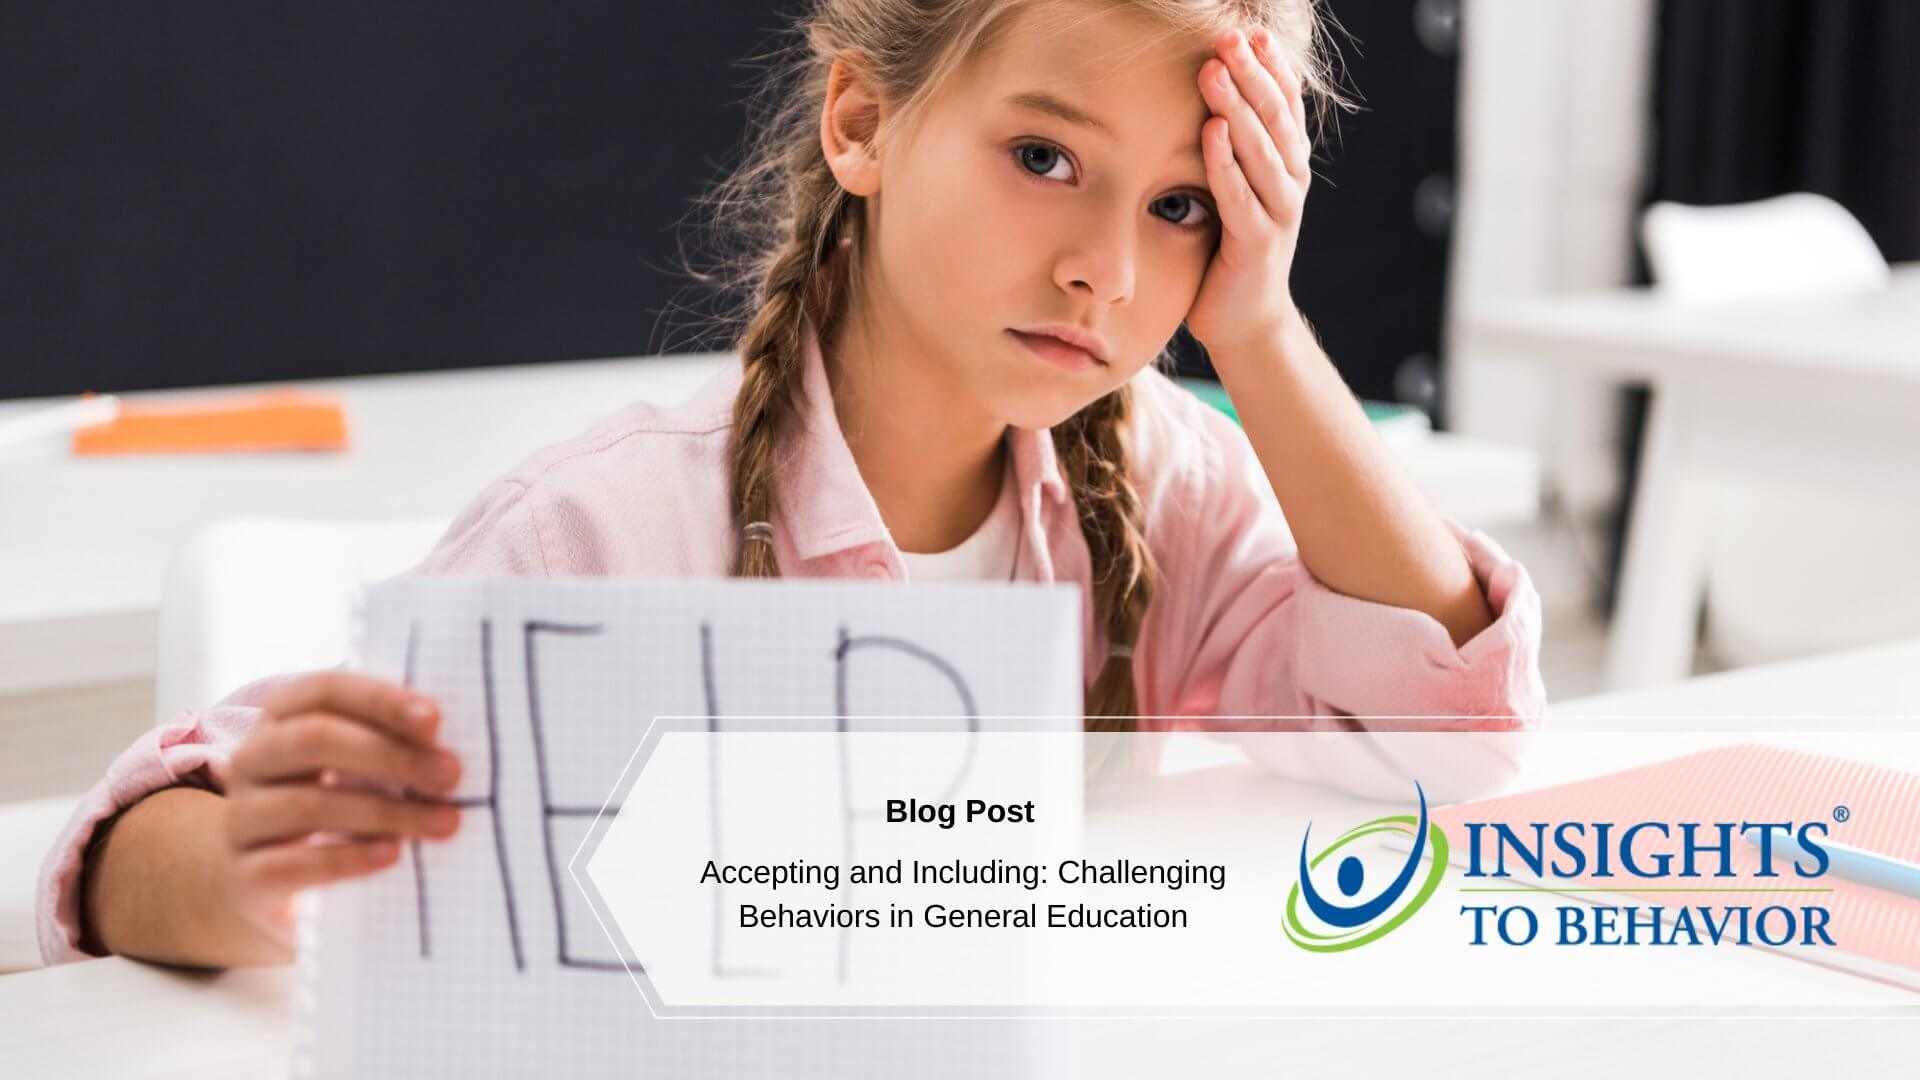 Accepting and Including: Challenging Behaviors in General Education